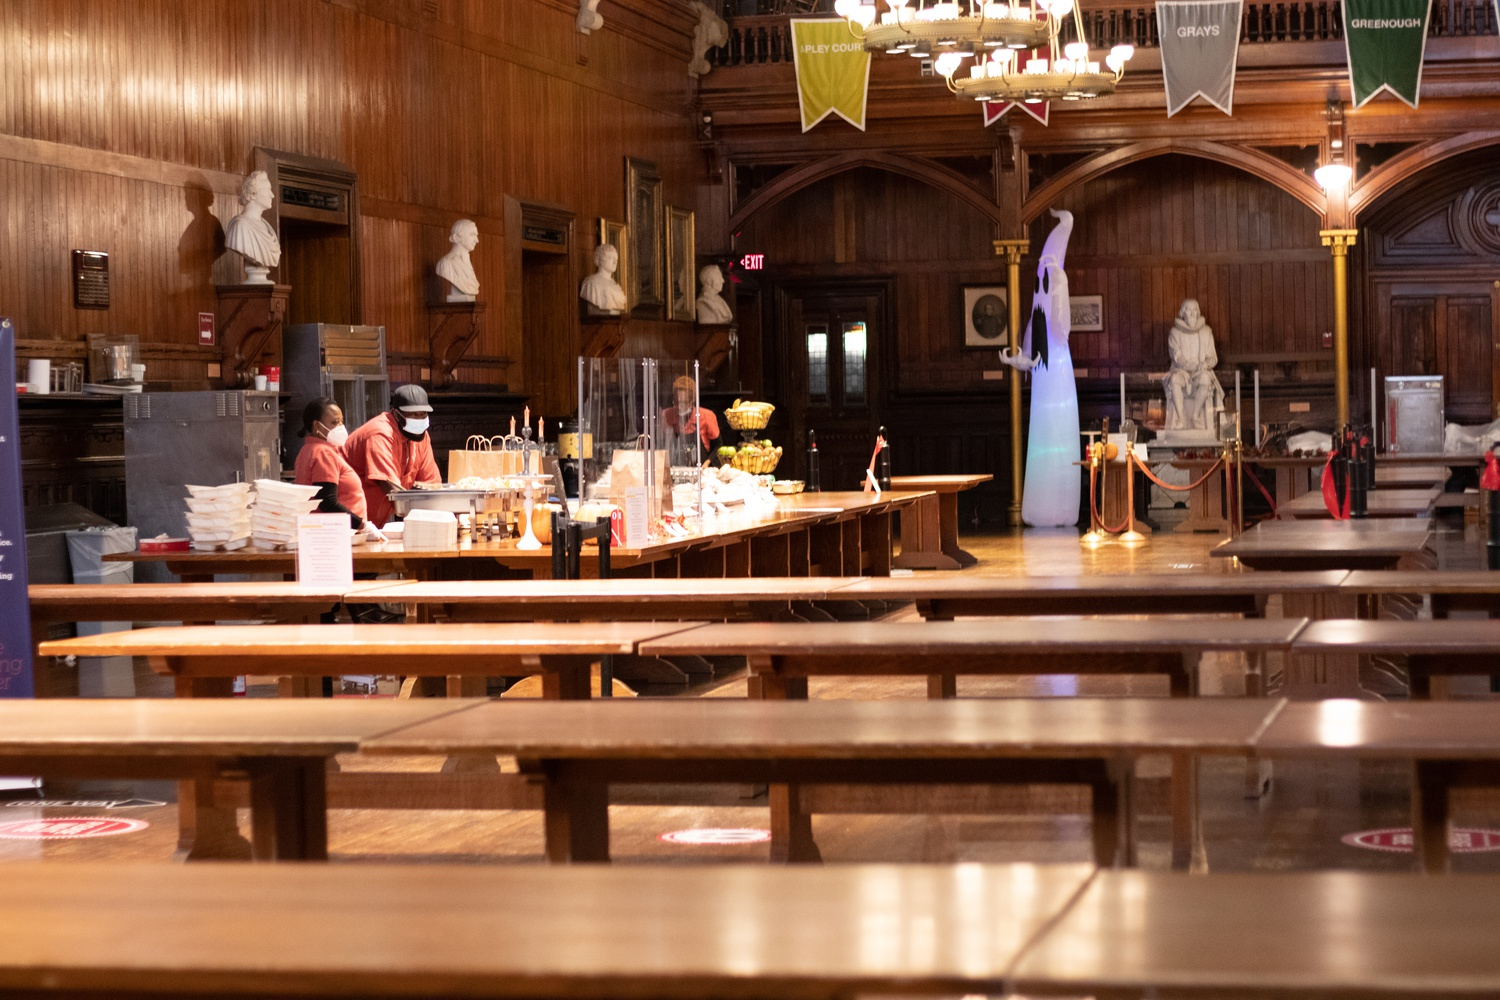 Annenberg Dining Hall remained mostly empty during the pandemic, with students only entering for a few minutes at a time to pick up bagged to-go meals.